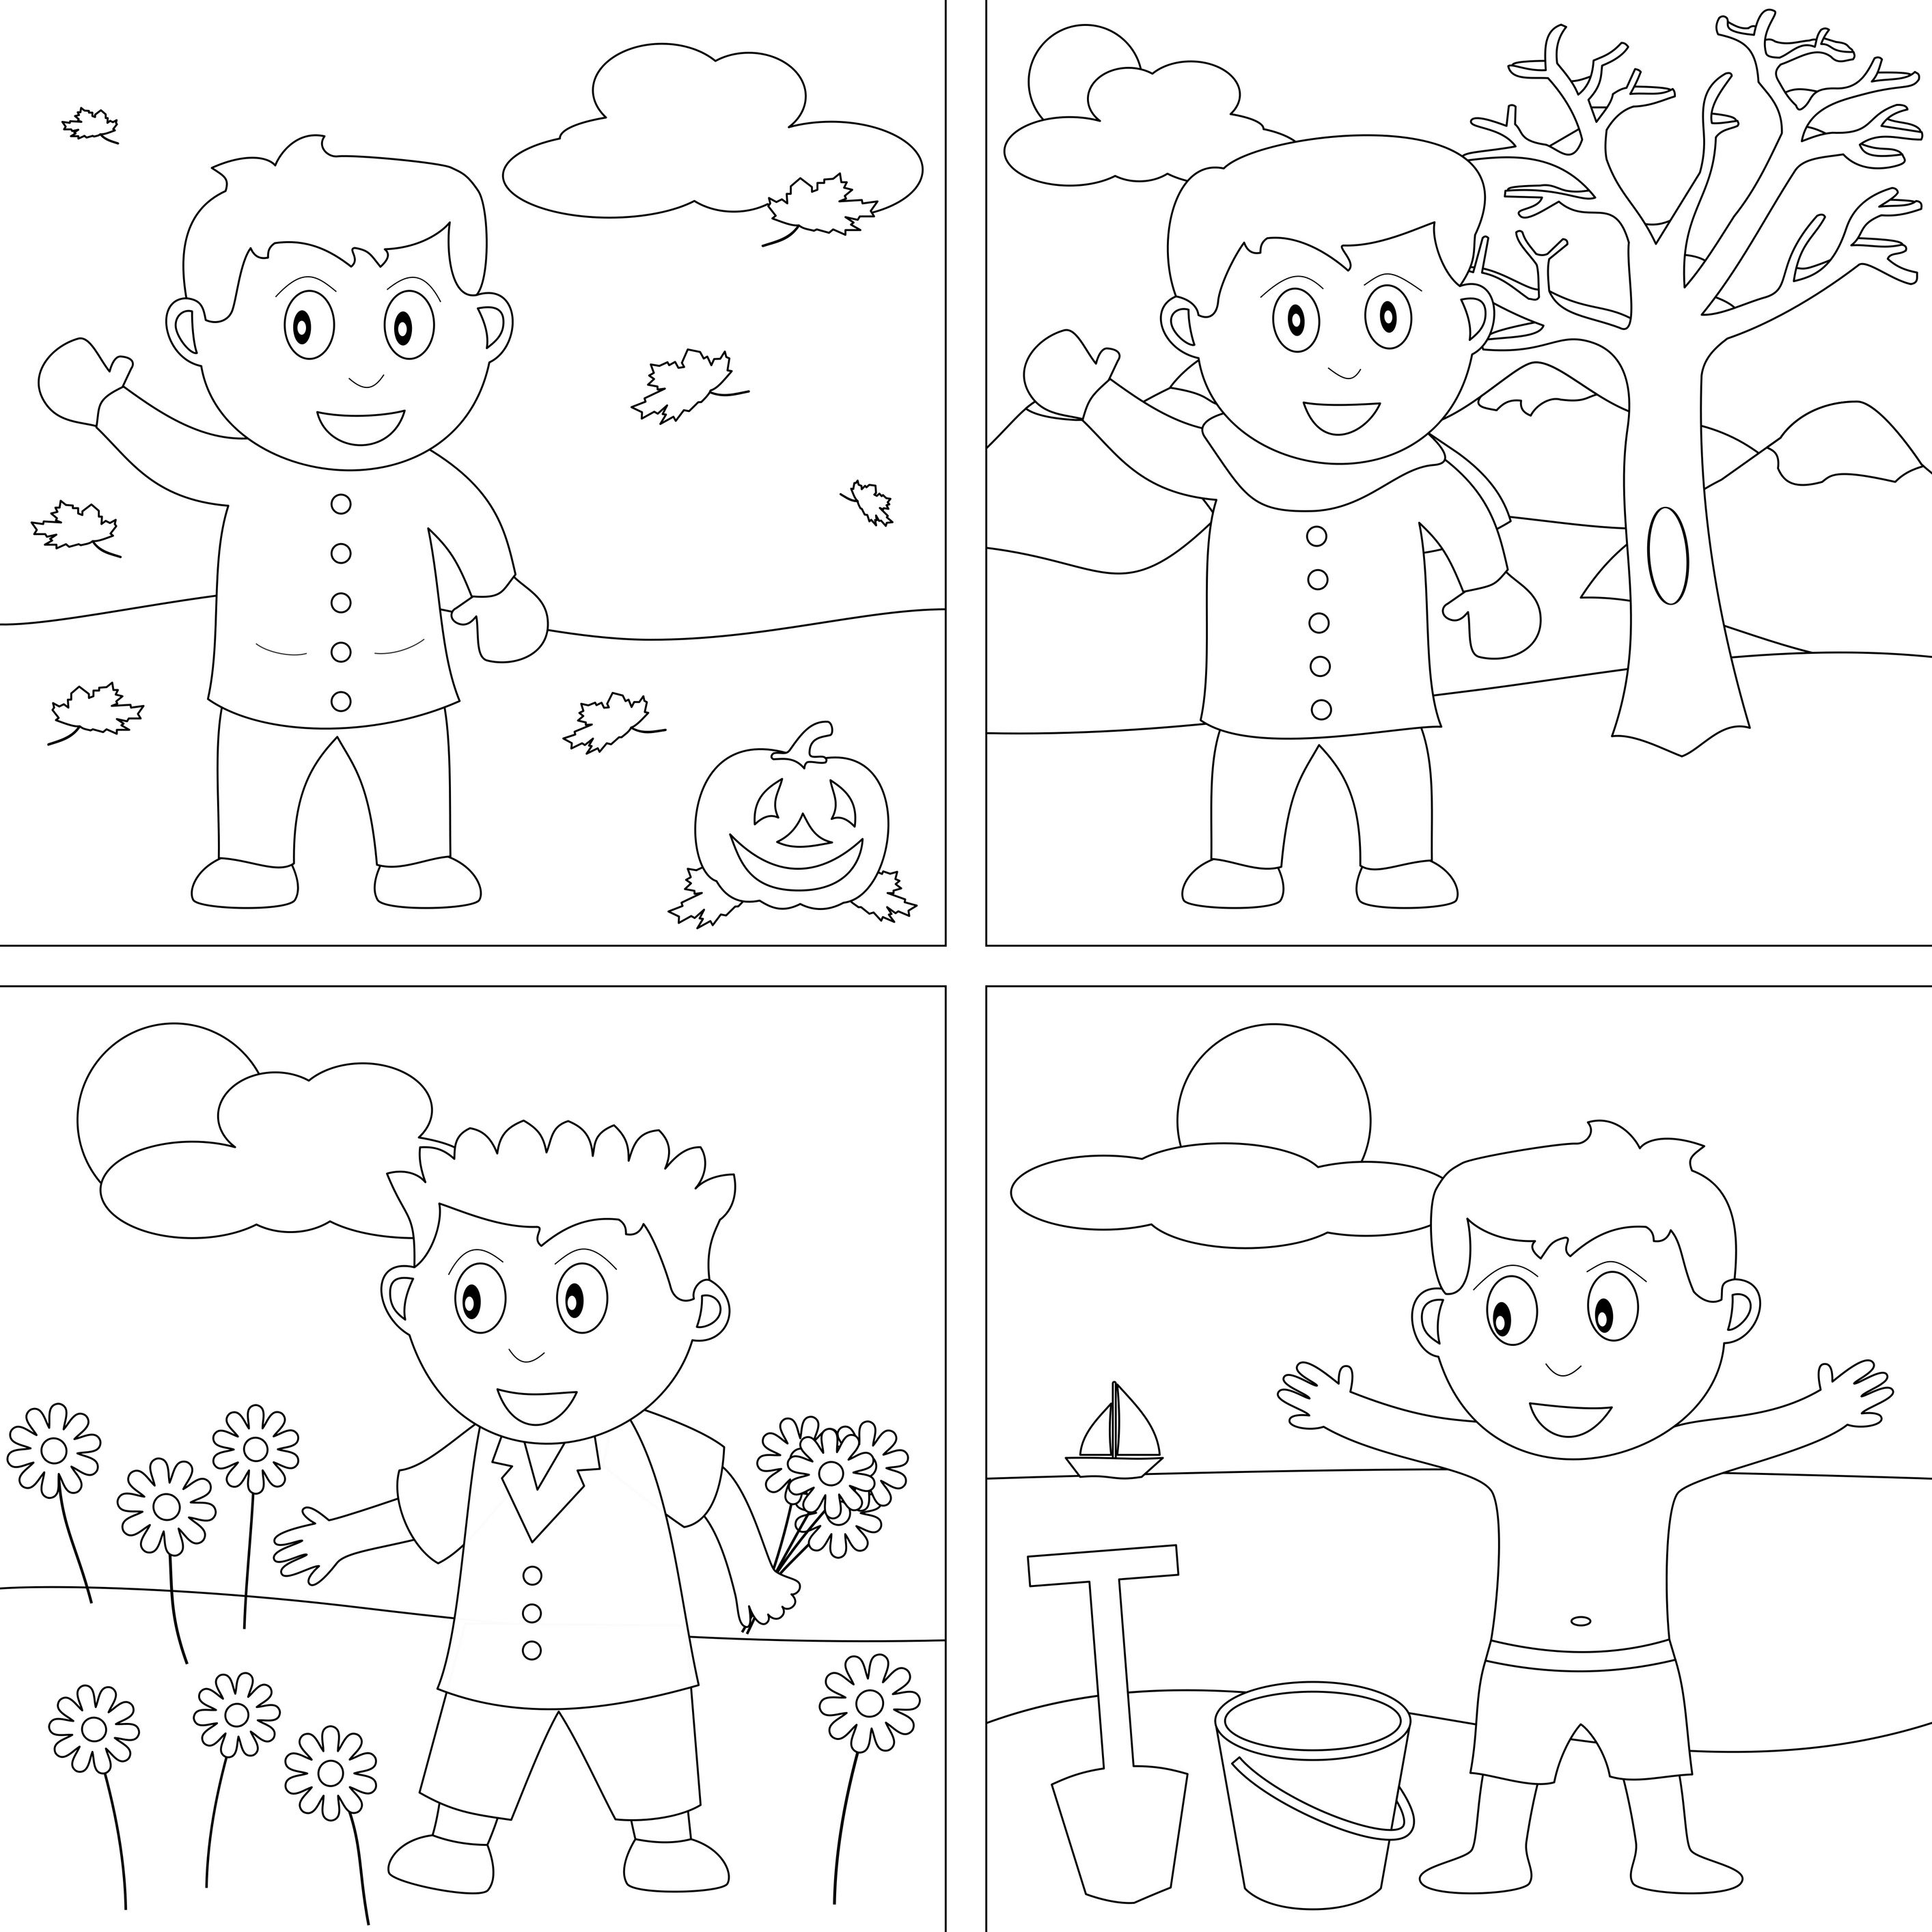 Four Seasons Coloring Pages For Kindergarten.